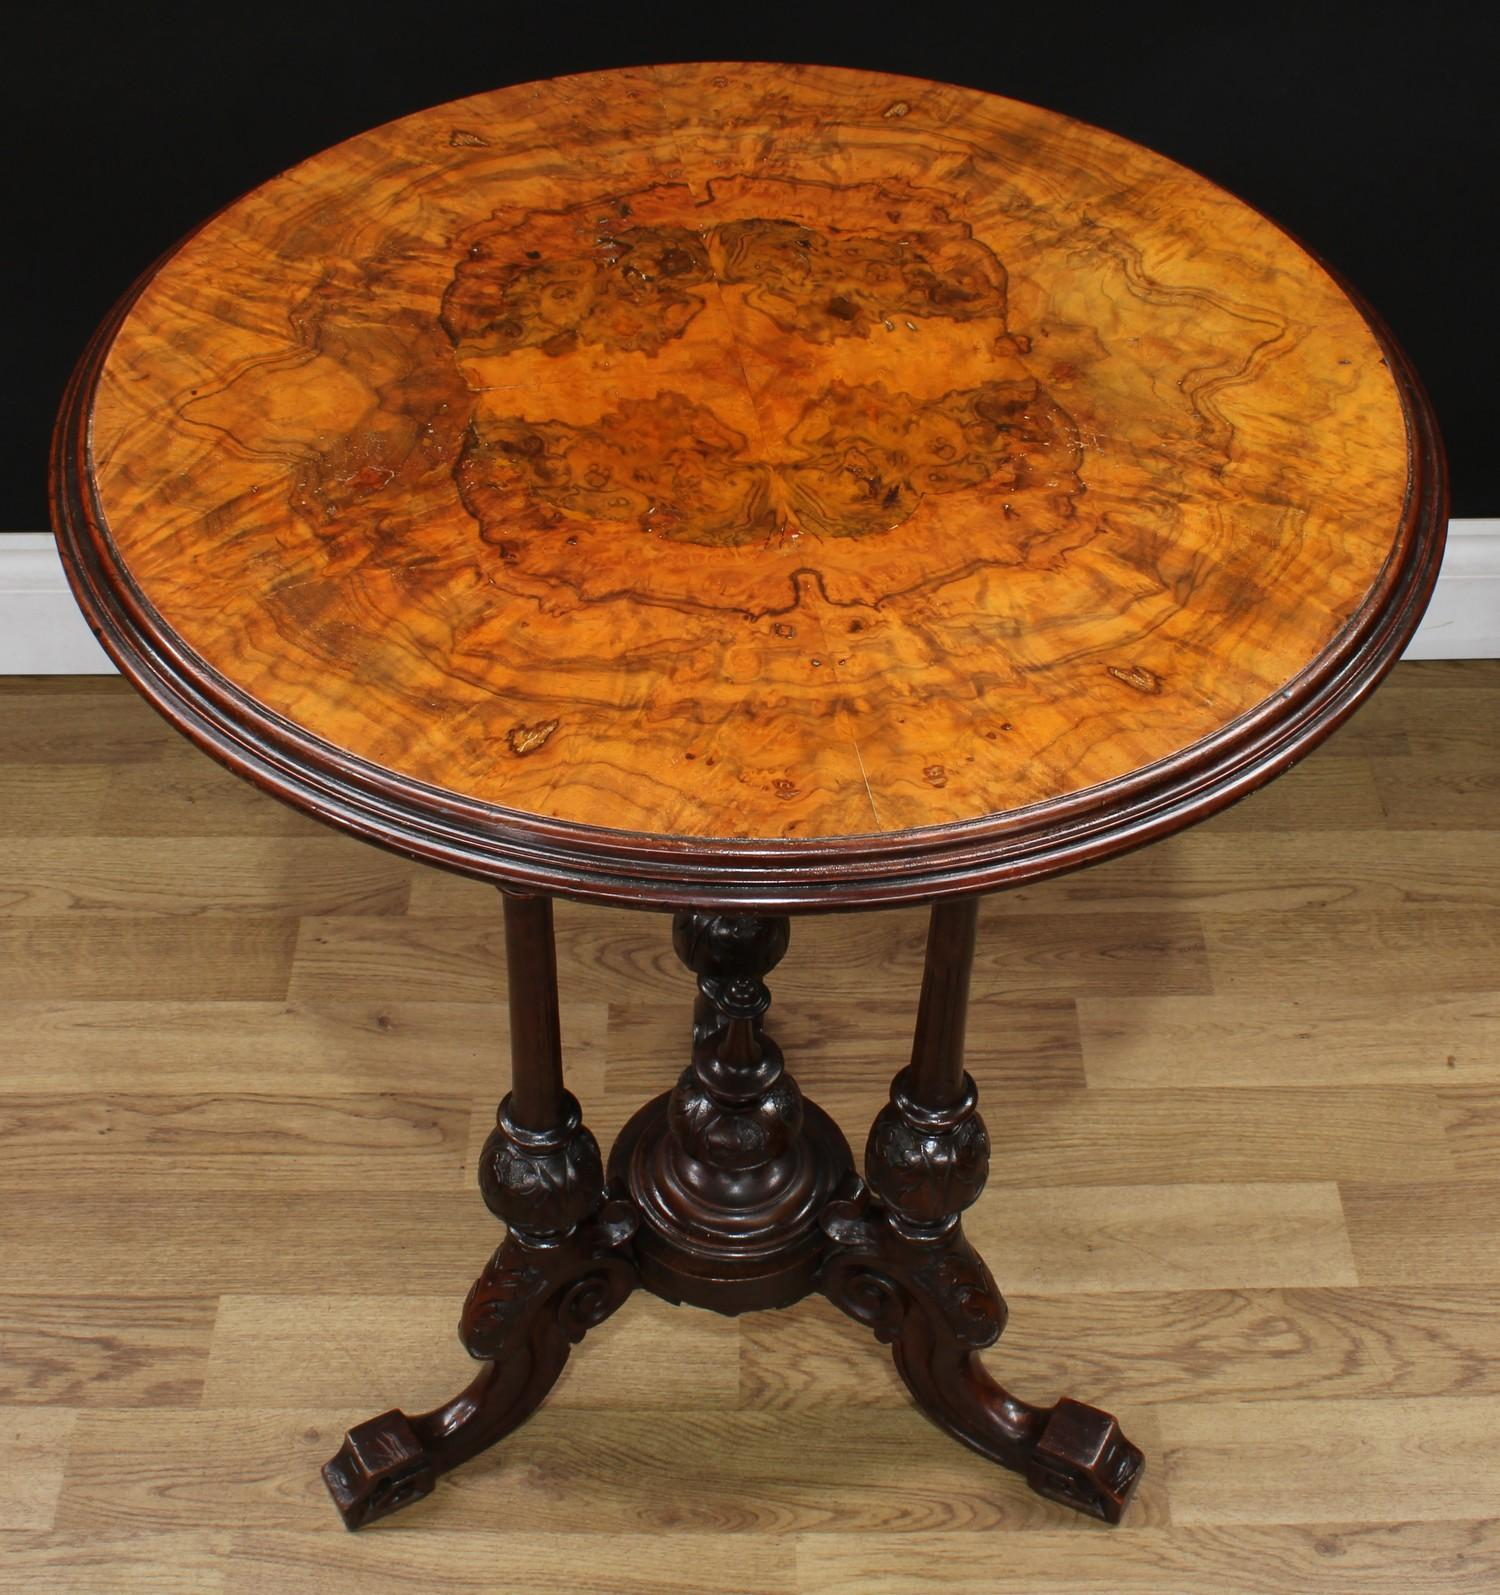 A Victorian walnut and mahogany wine table, quarter-veneered circular top with moulded edge, - Image 2 of 3